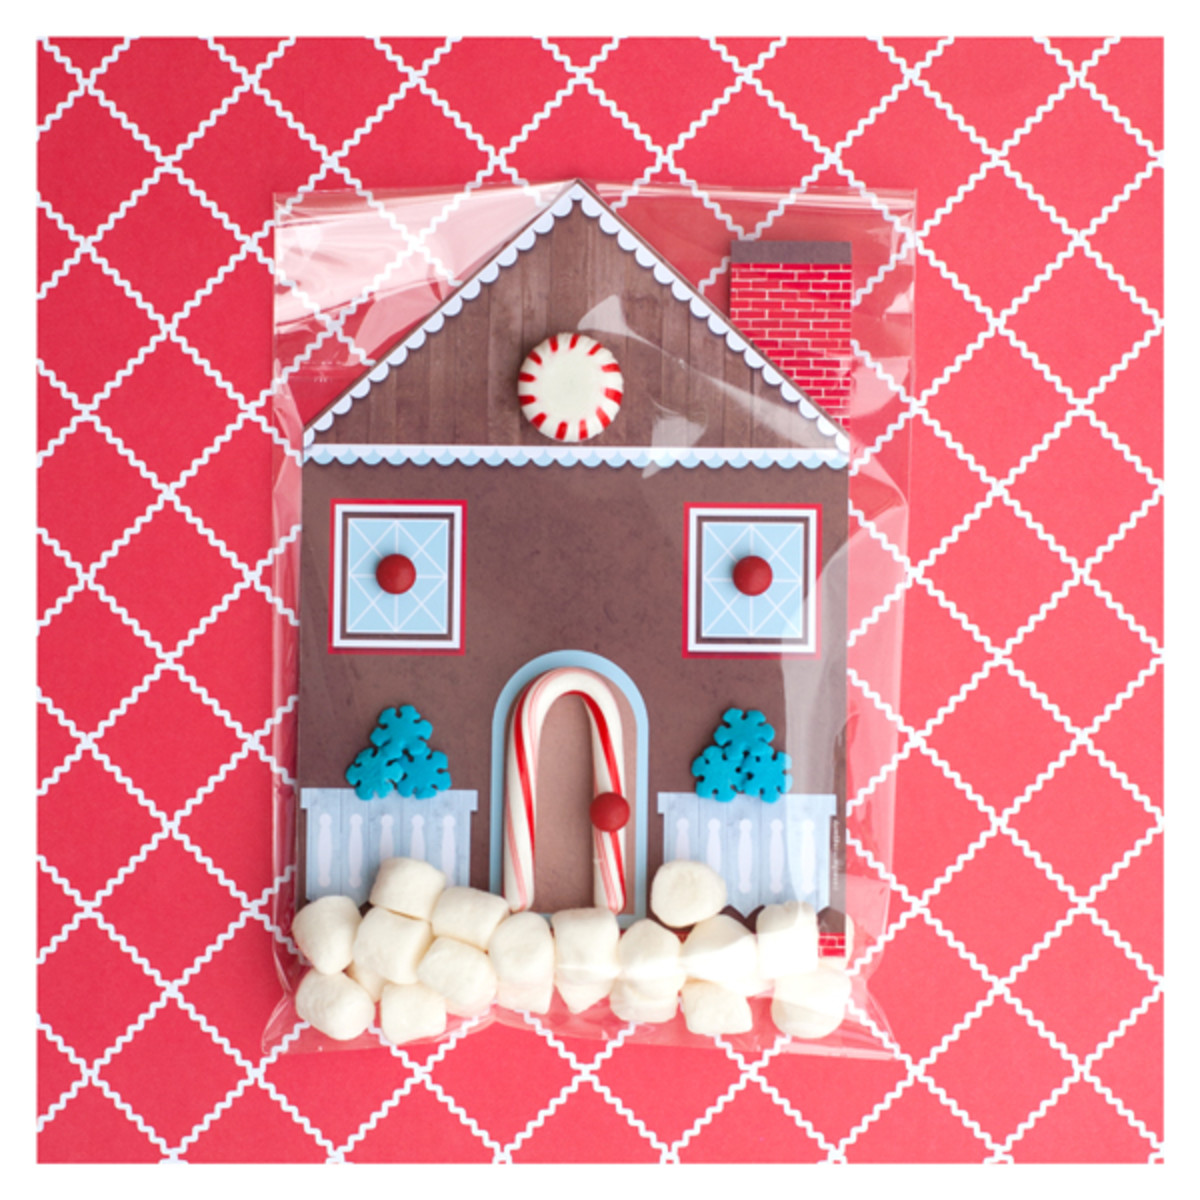 Feel like creating something really cool this Christmas? Try this printable gingerbread house card, decorated with real candy.